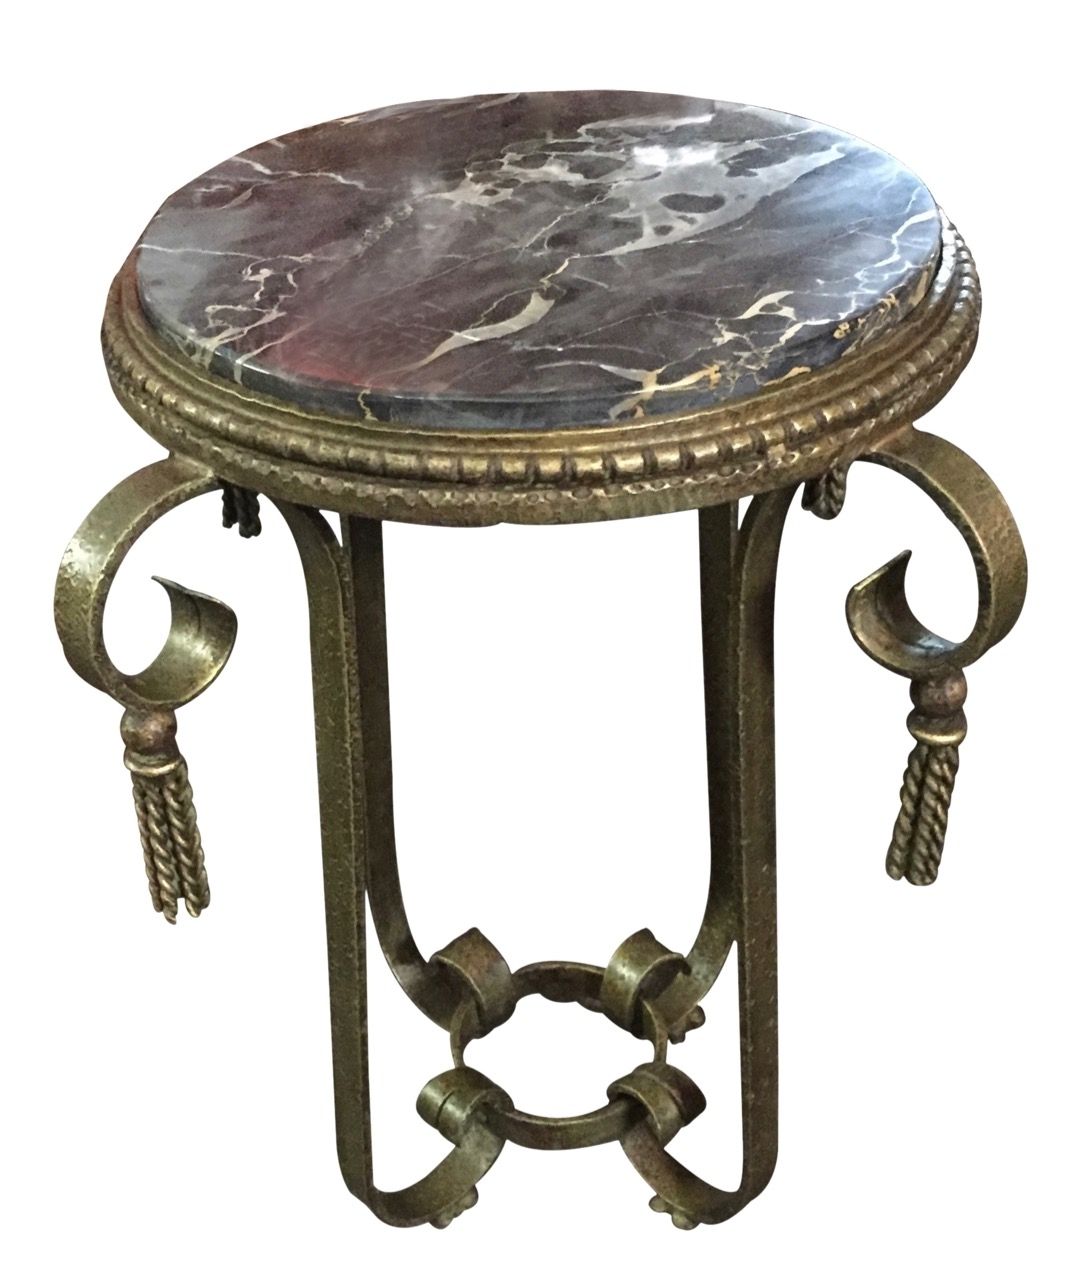 Art Deco Furniture For Sale | Ironwork | Art Deco Collection pertaining to Antiqued Art Deco Coffee Tables (Image 16 of 30)